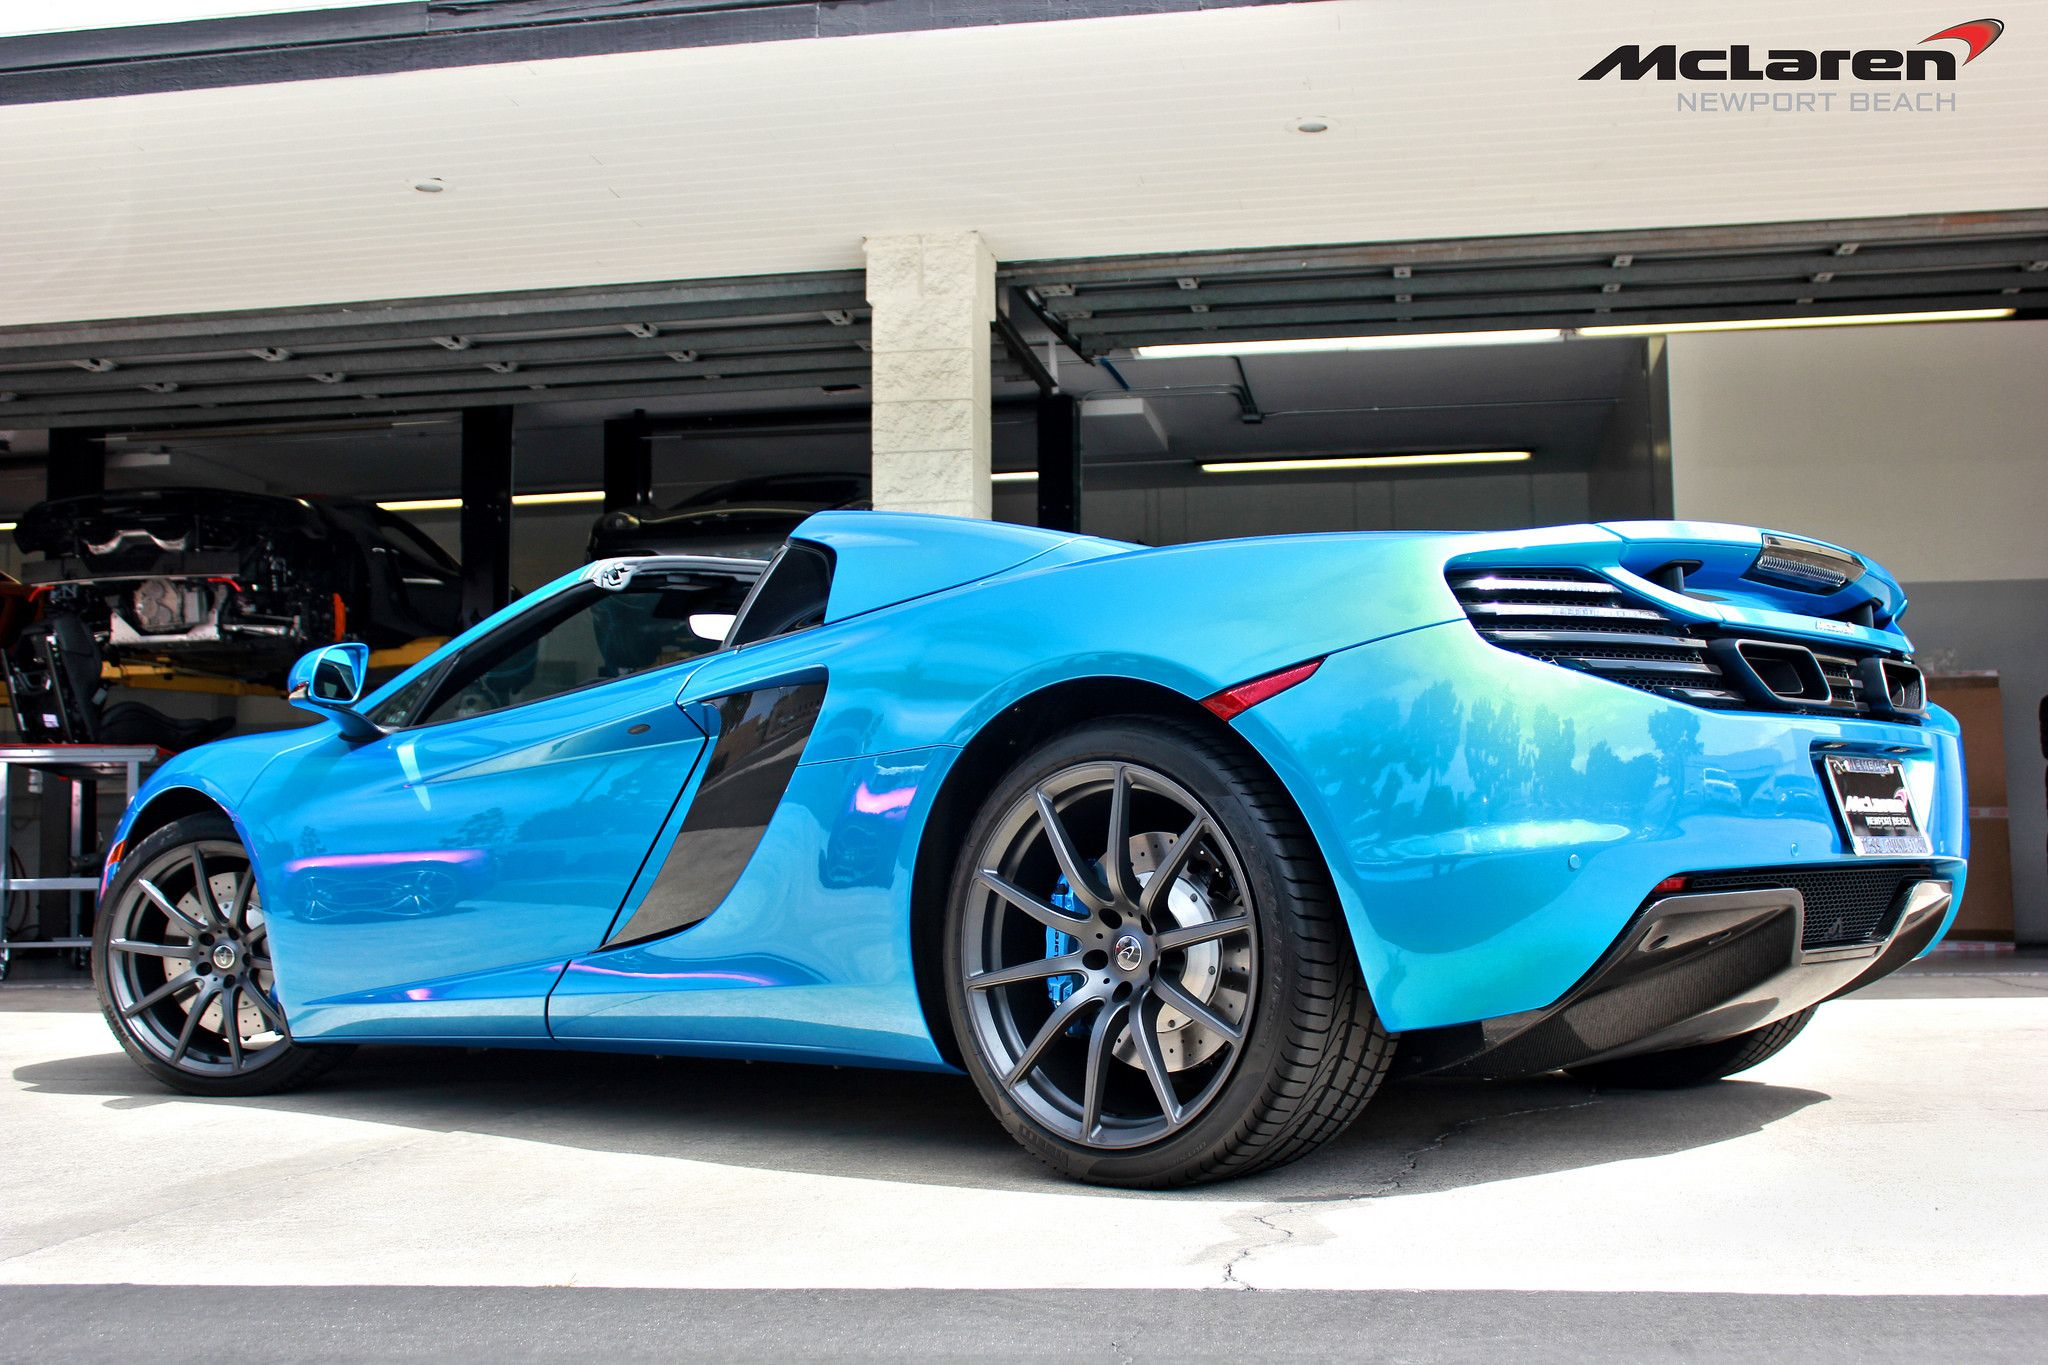 Etonnant McLaren MP4 12C Spider, Awesome Deals For Car Owners At All Locations  Queens Brake